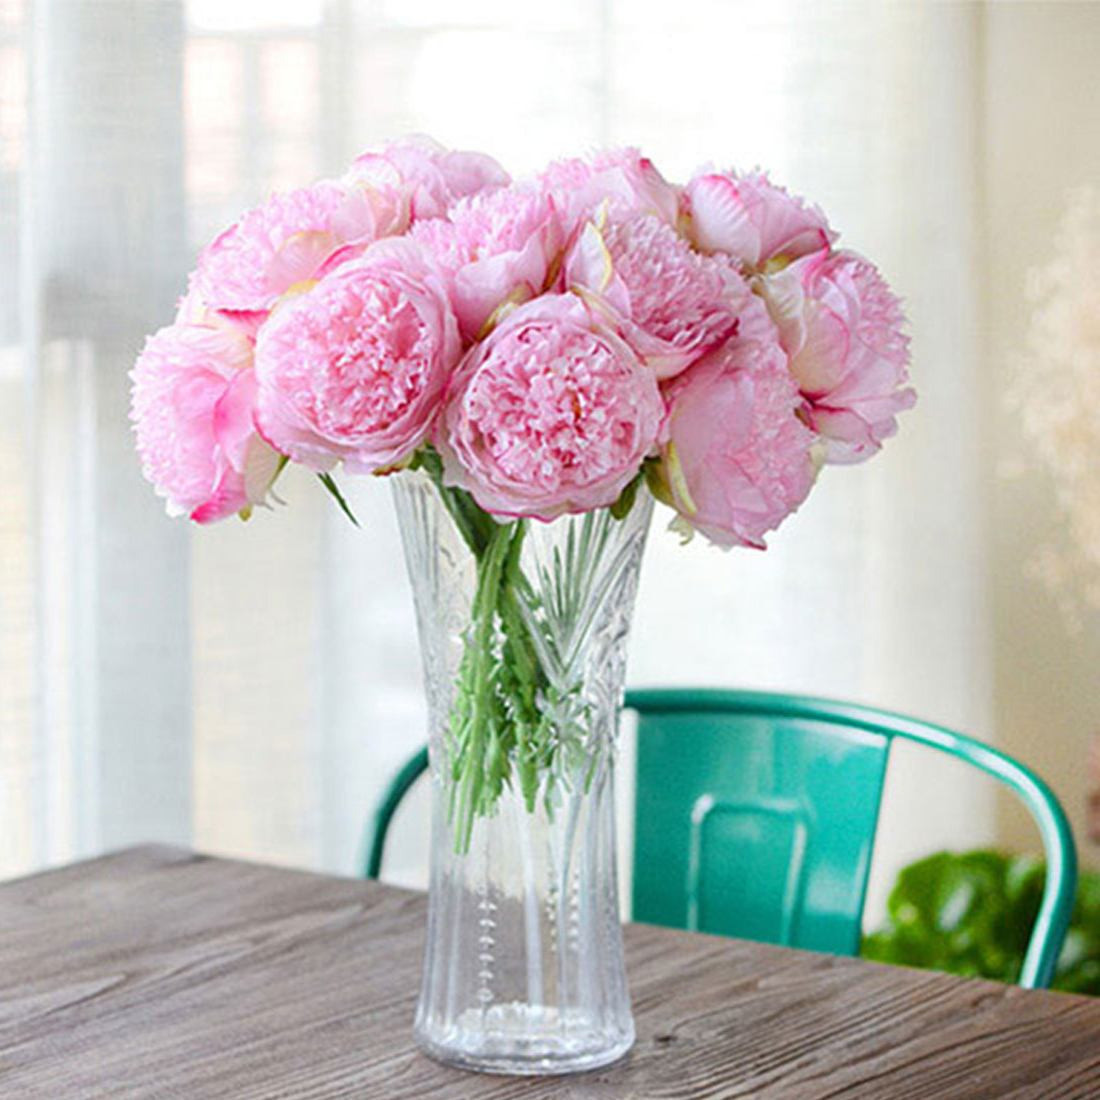 small fake flowers in vase of flowers similar to peonies 39 luxury tall fake flowers home ideas with flowers similar to peonies il fullxfull 8mg8h vases fake peonies in vase zoomi 0d design ideas